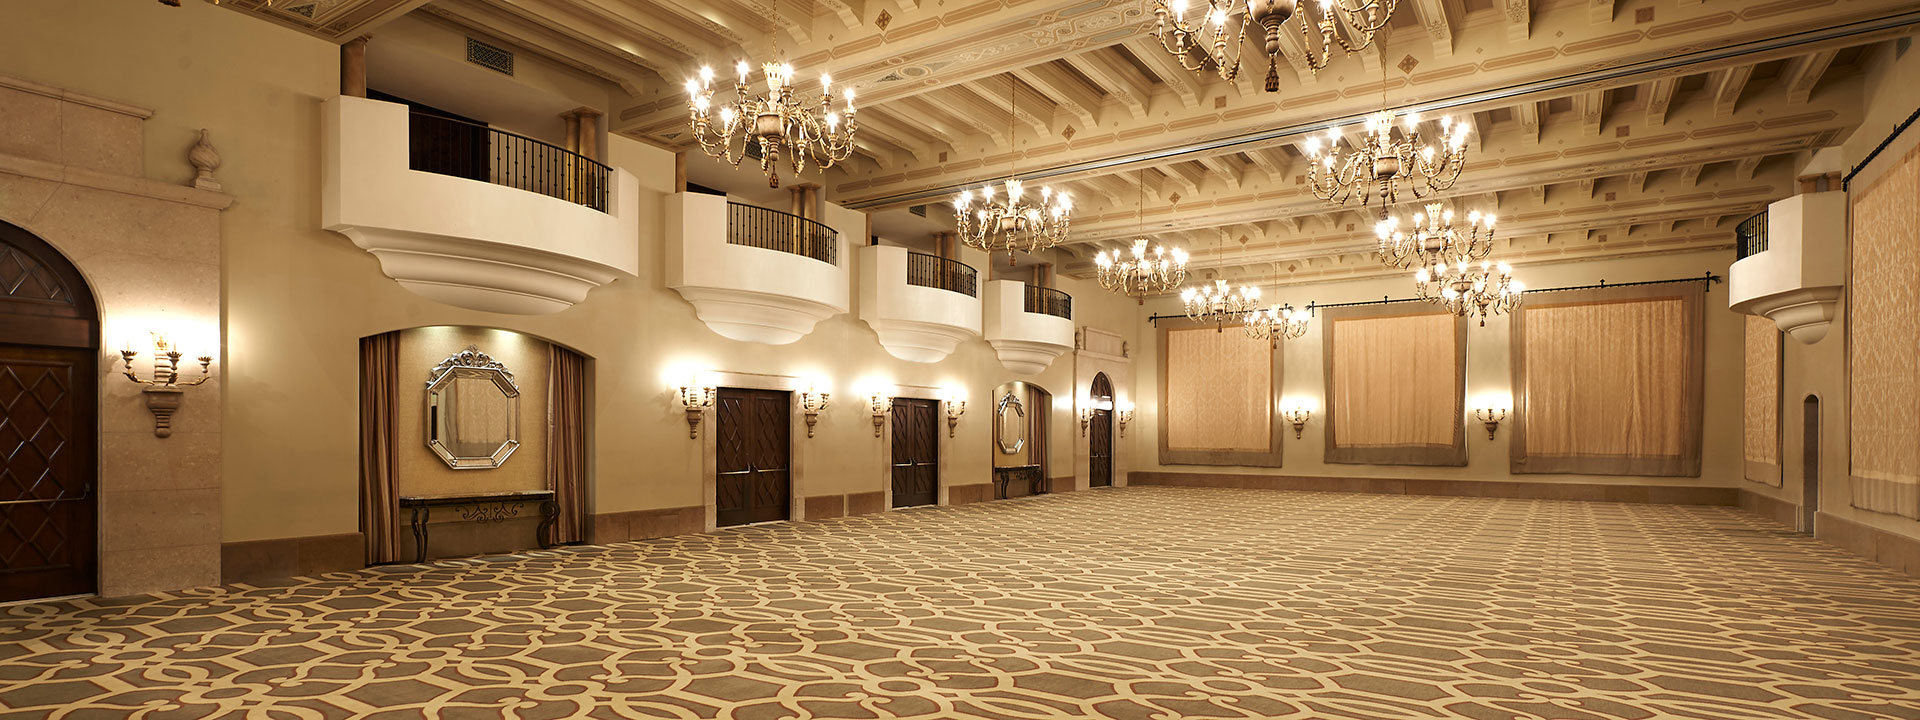 Marquesa's spacious ballroom and opera balconies